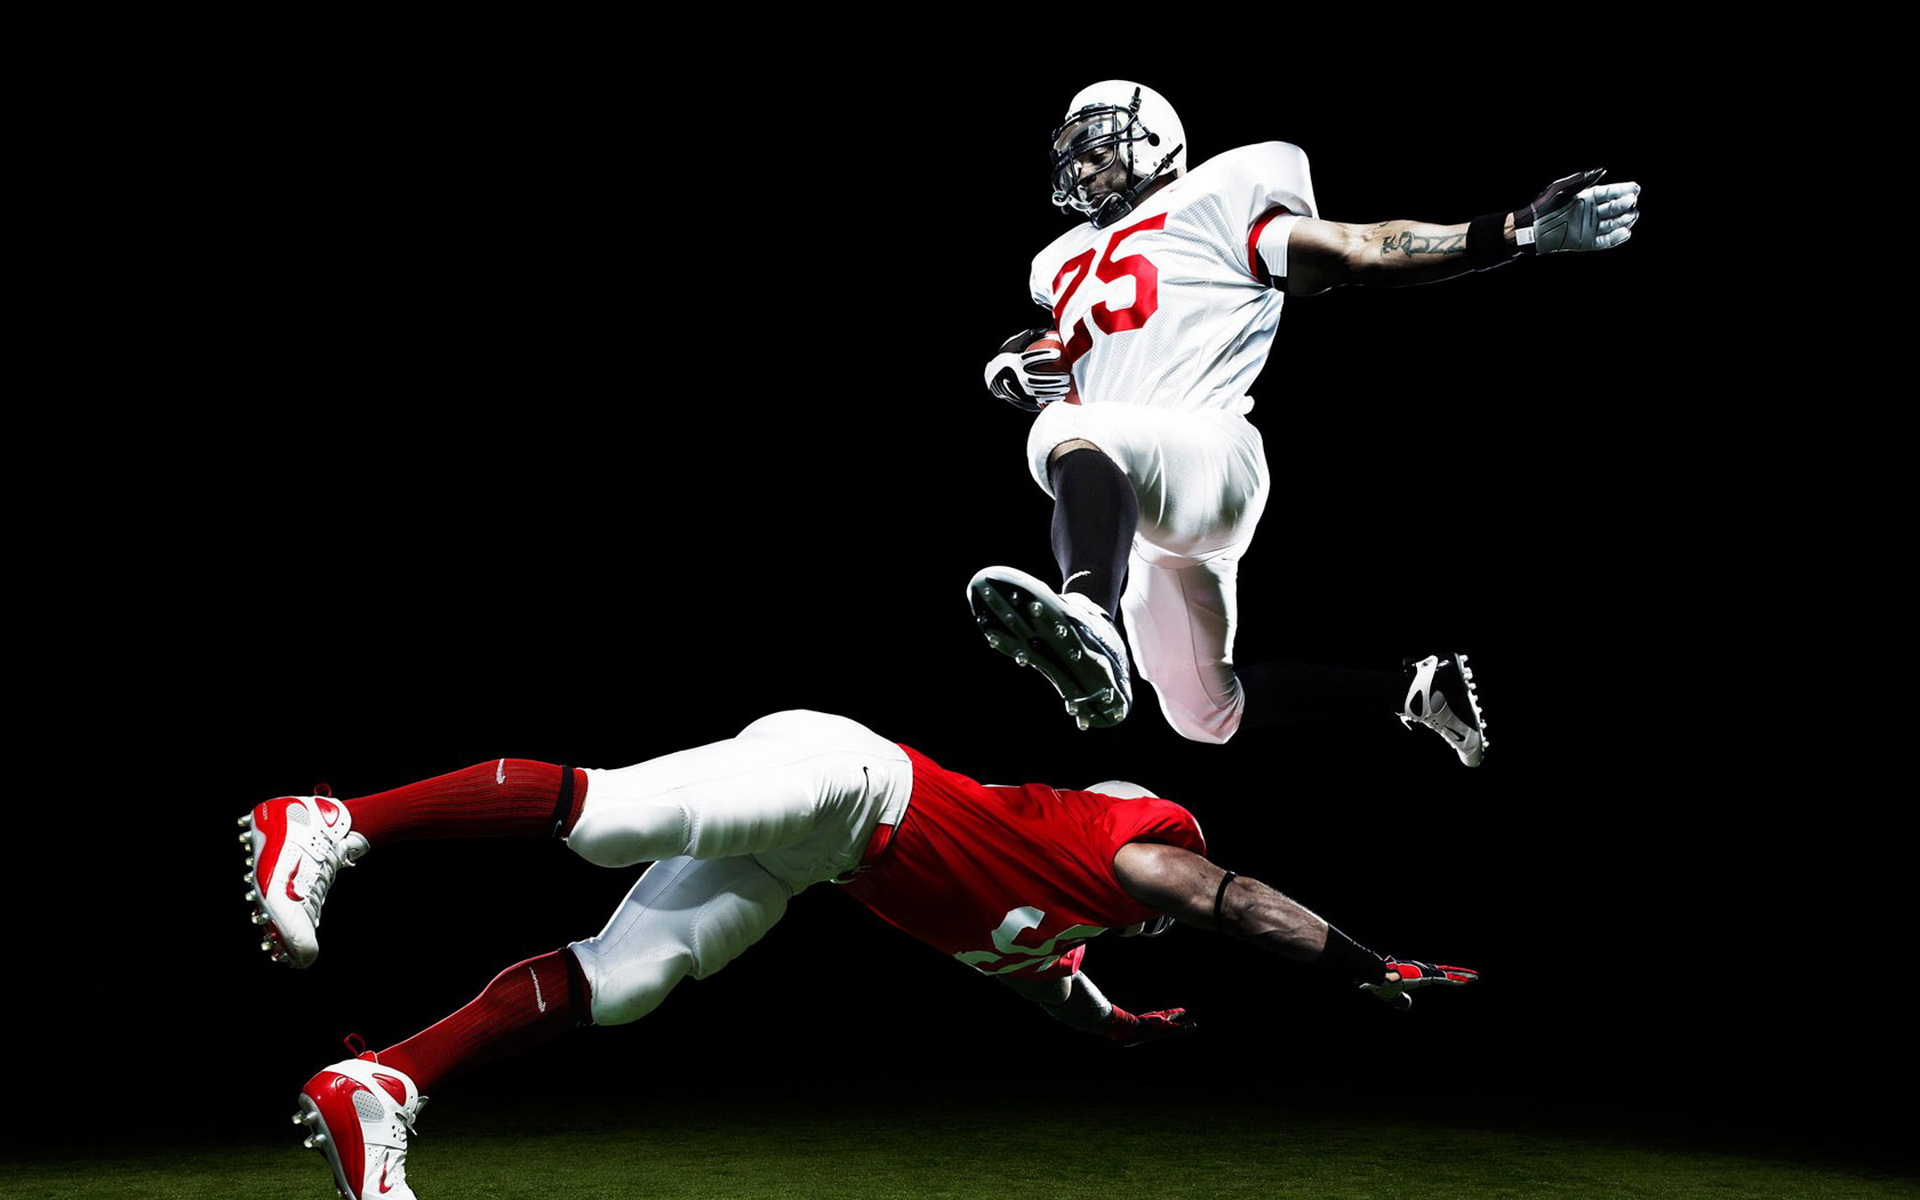 Tackle football players wallpapers